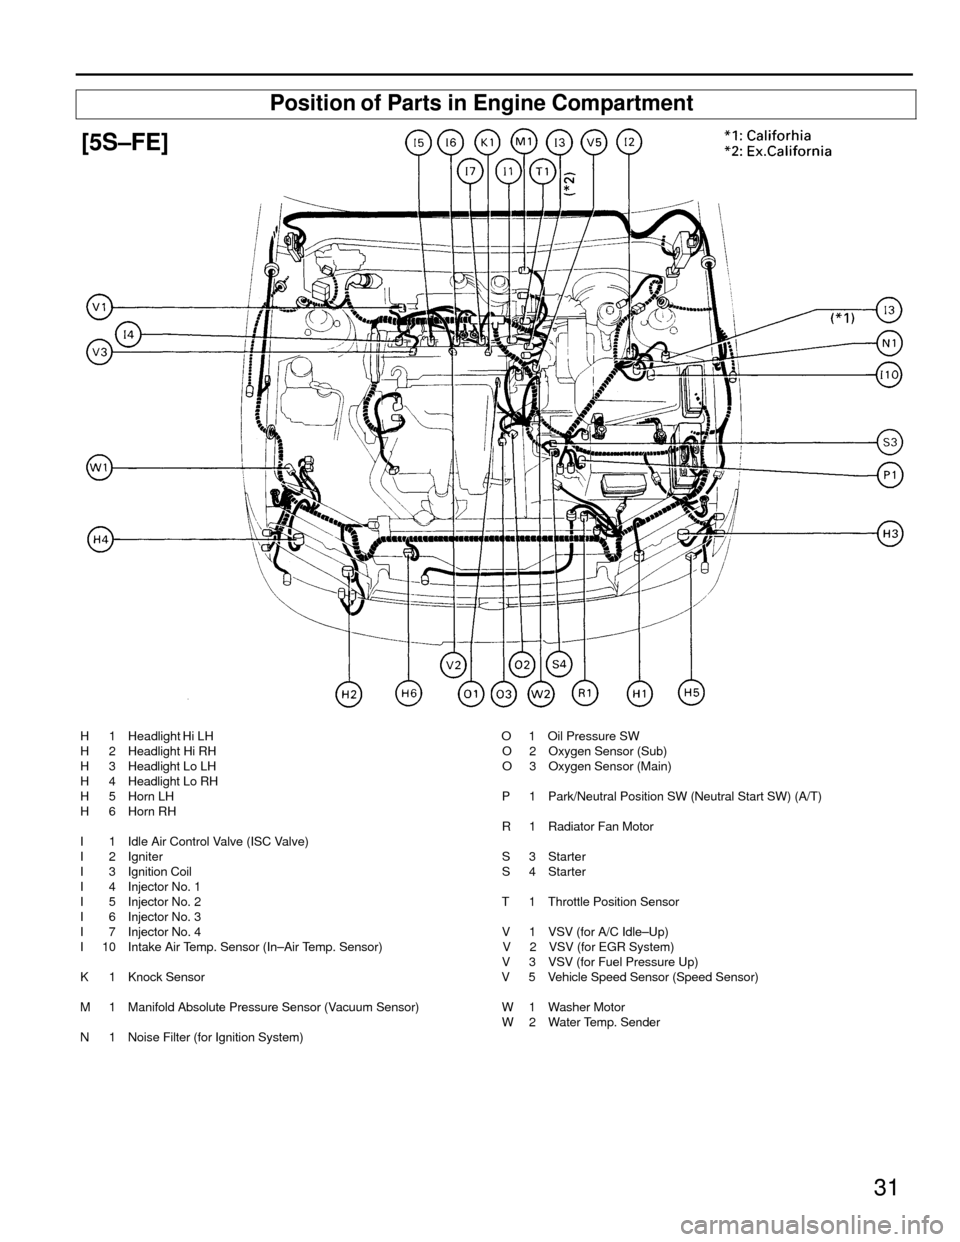 [WRG-5951] Toyota 3 4 Engine Wiring Diagram